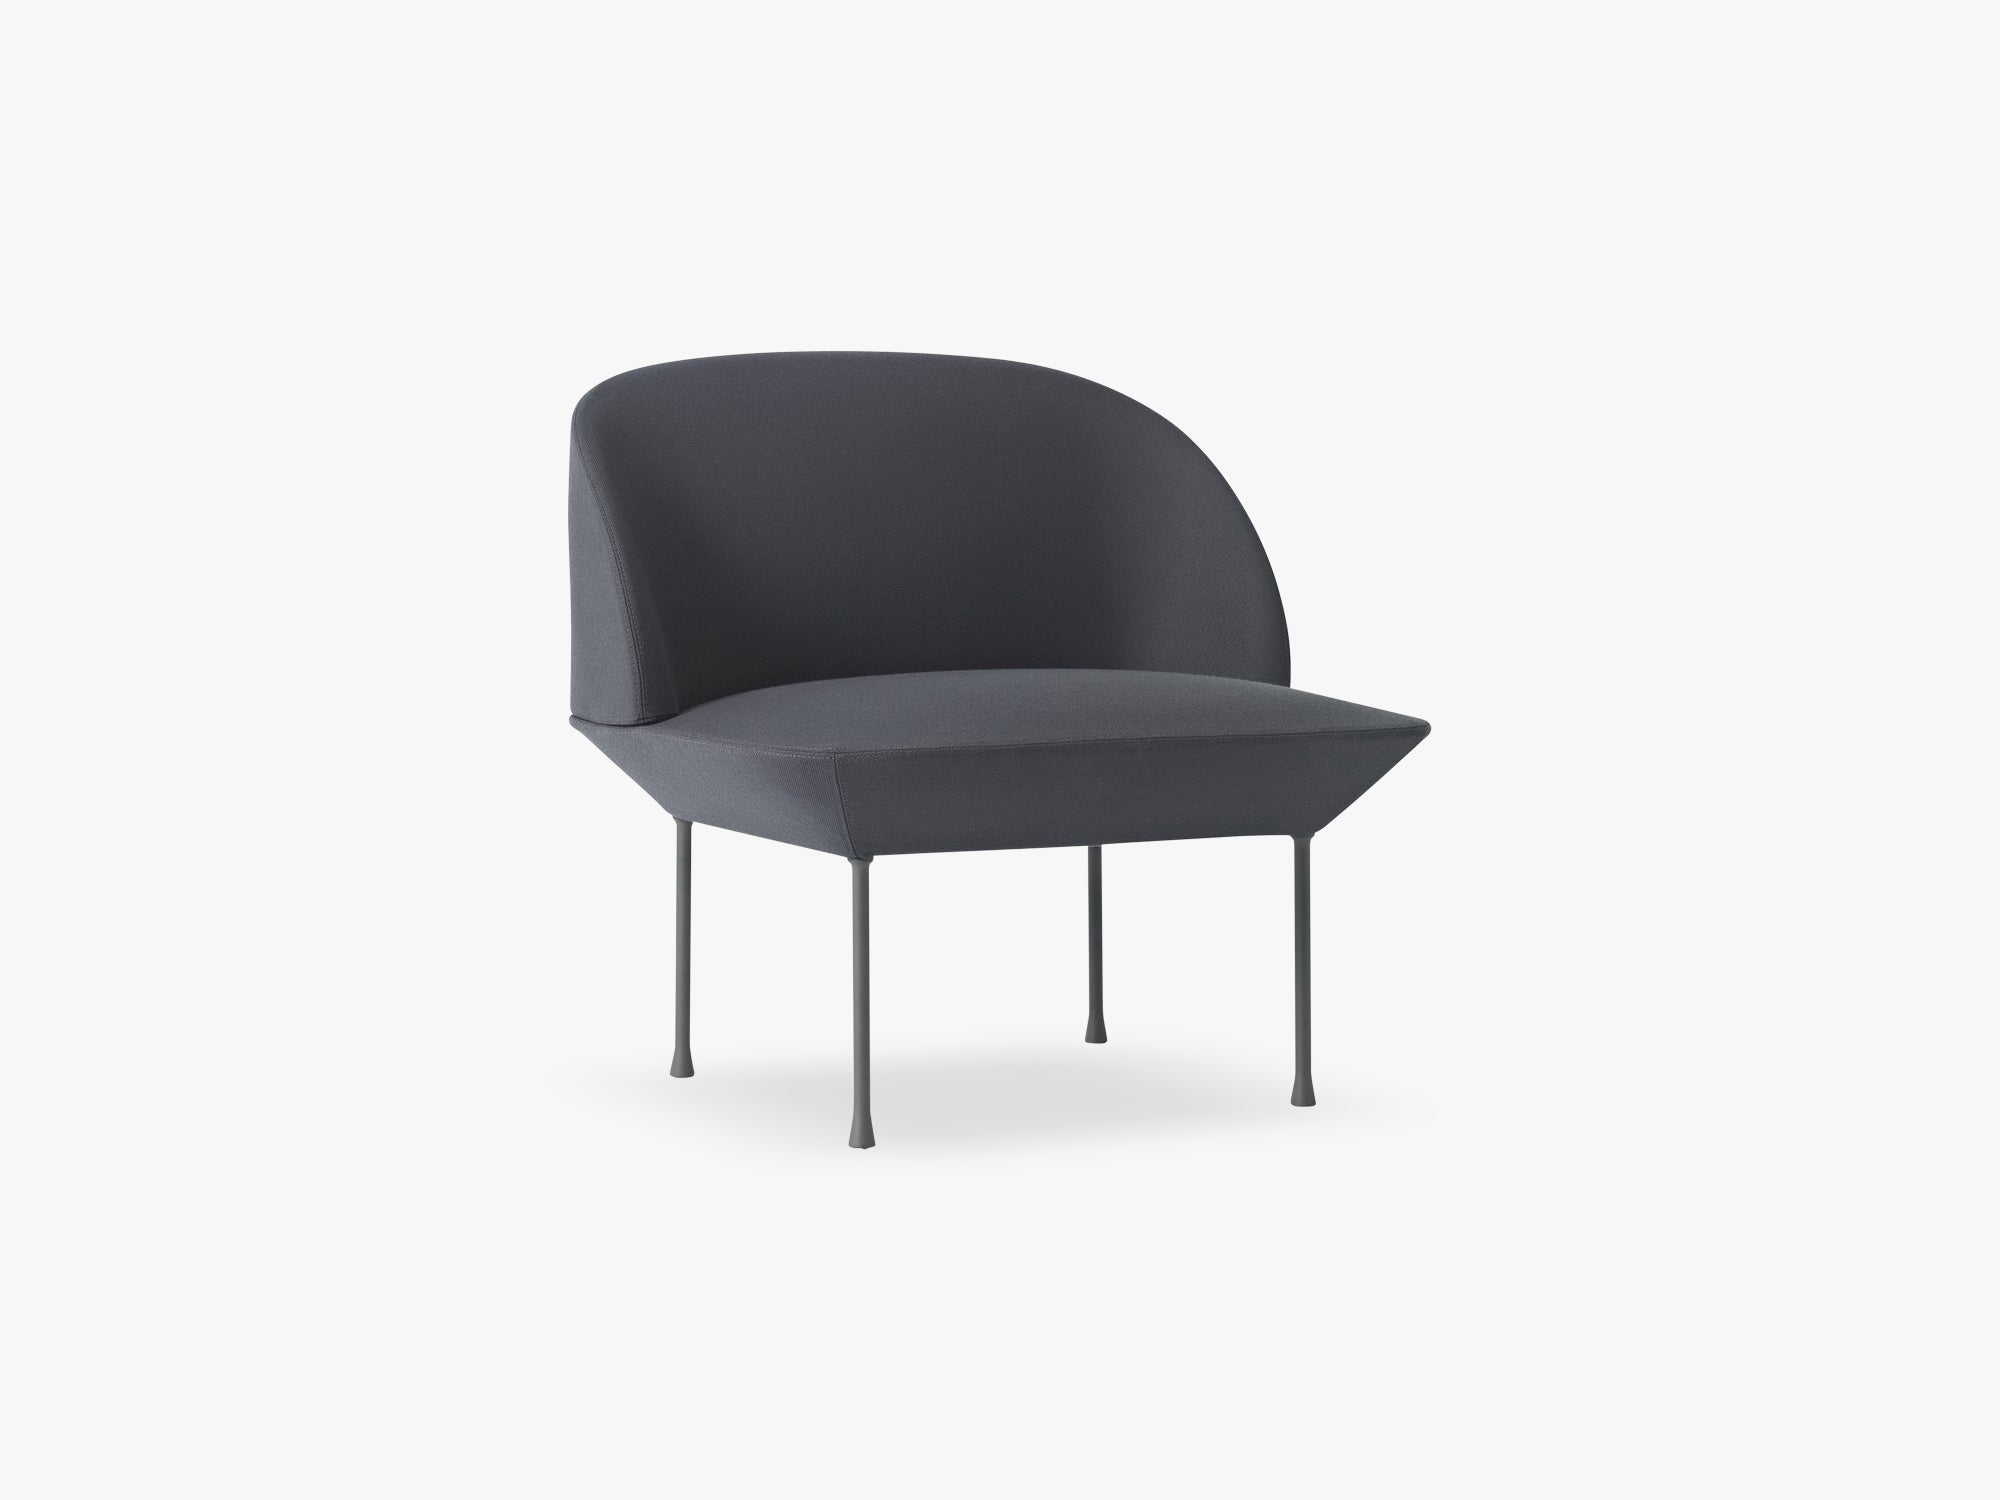 Oslo Lounge Chair / Lounge Chair, Steelcut 180 / Dark Grey Legs fra Muuto